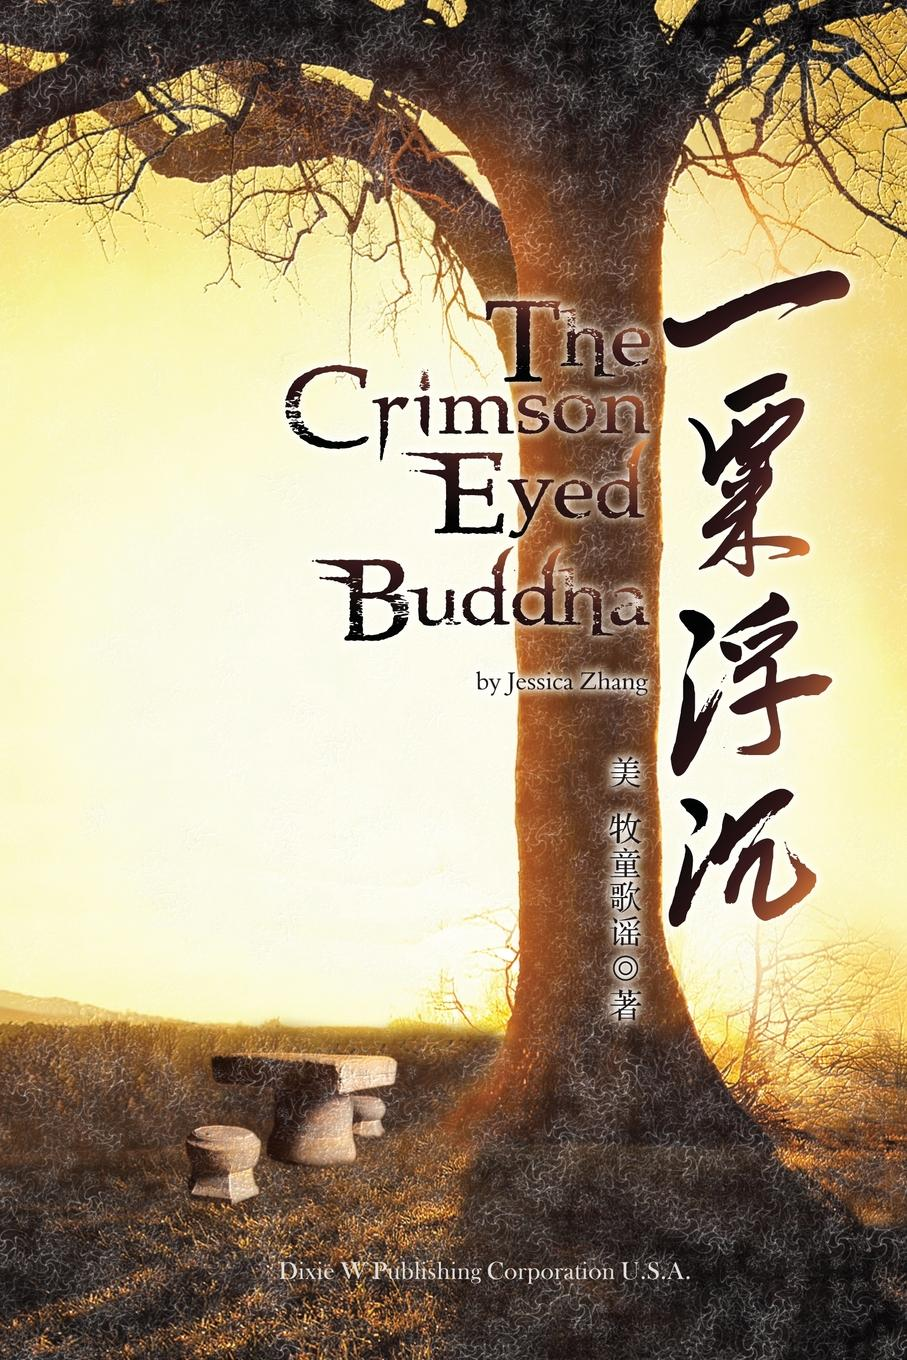 Jessica Zhang The Crimson Eyed Buddha 赚钱更要赚人生